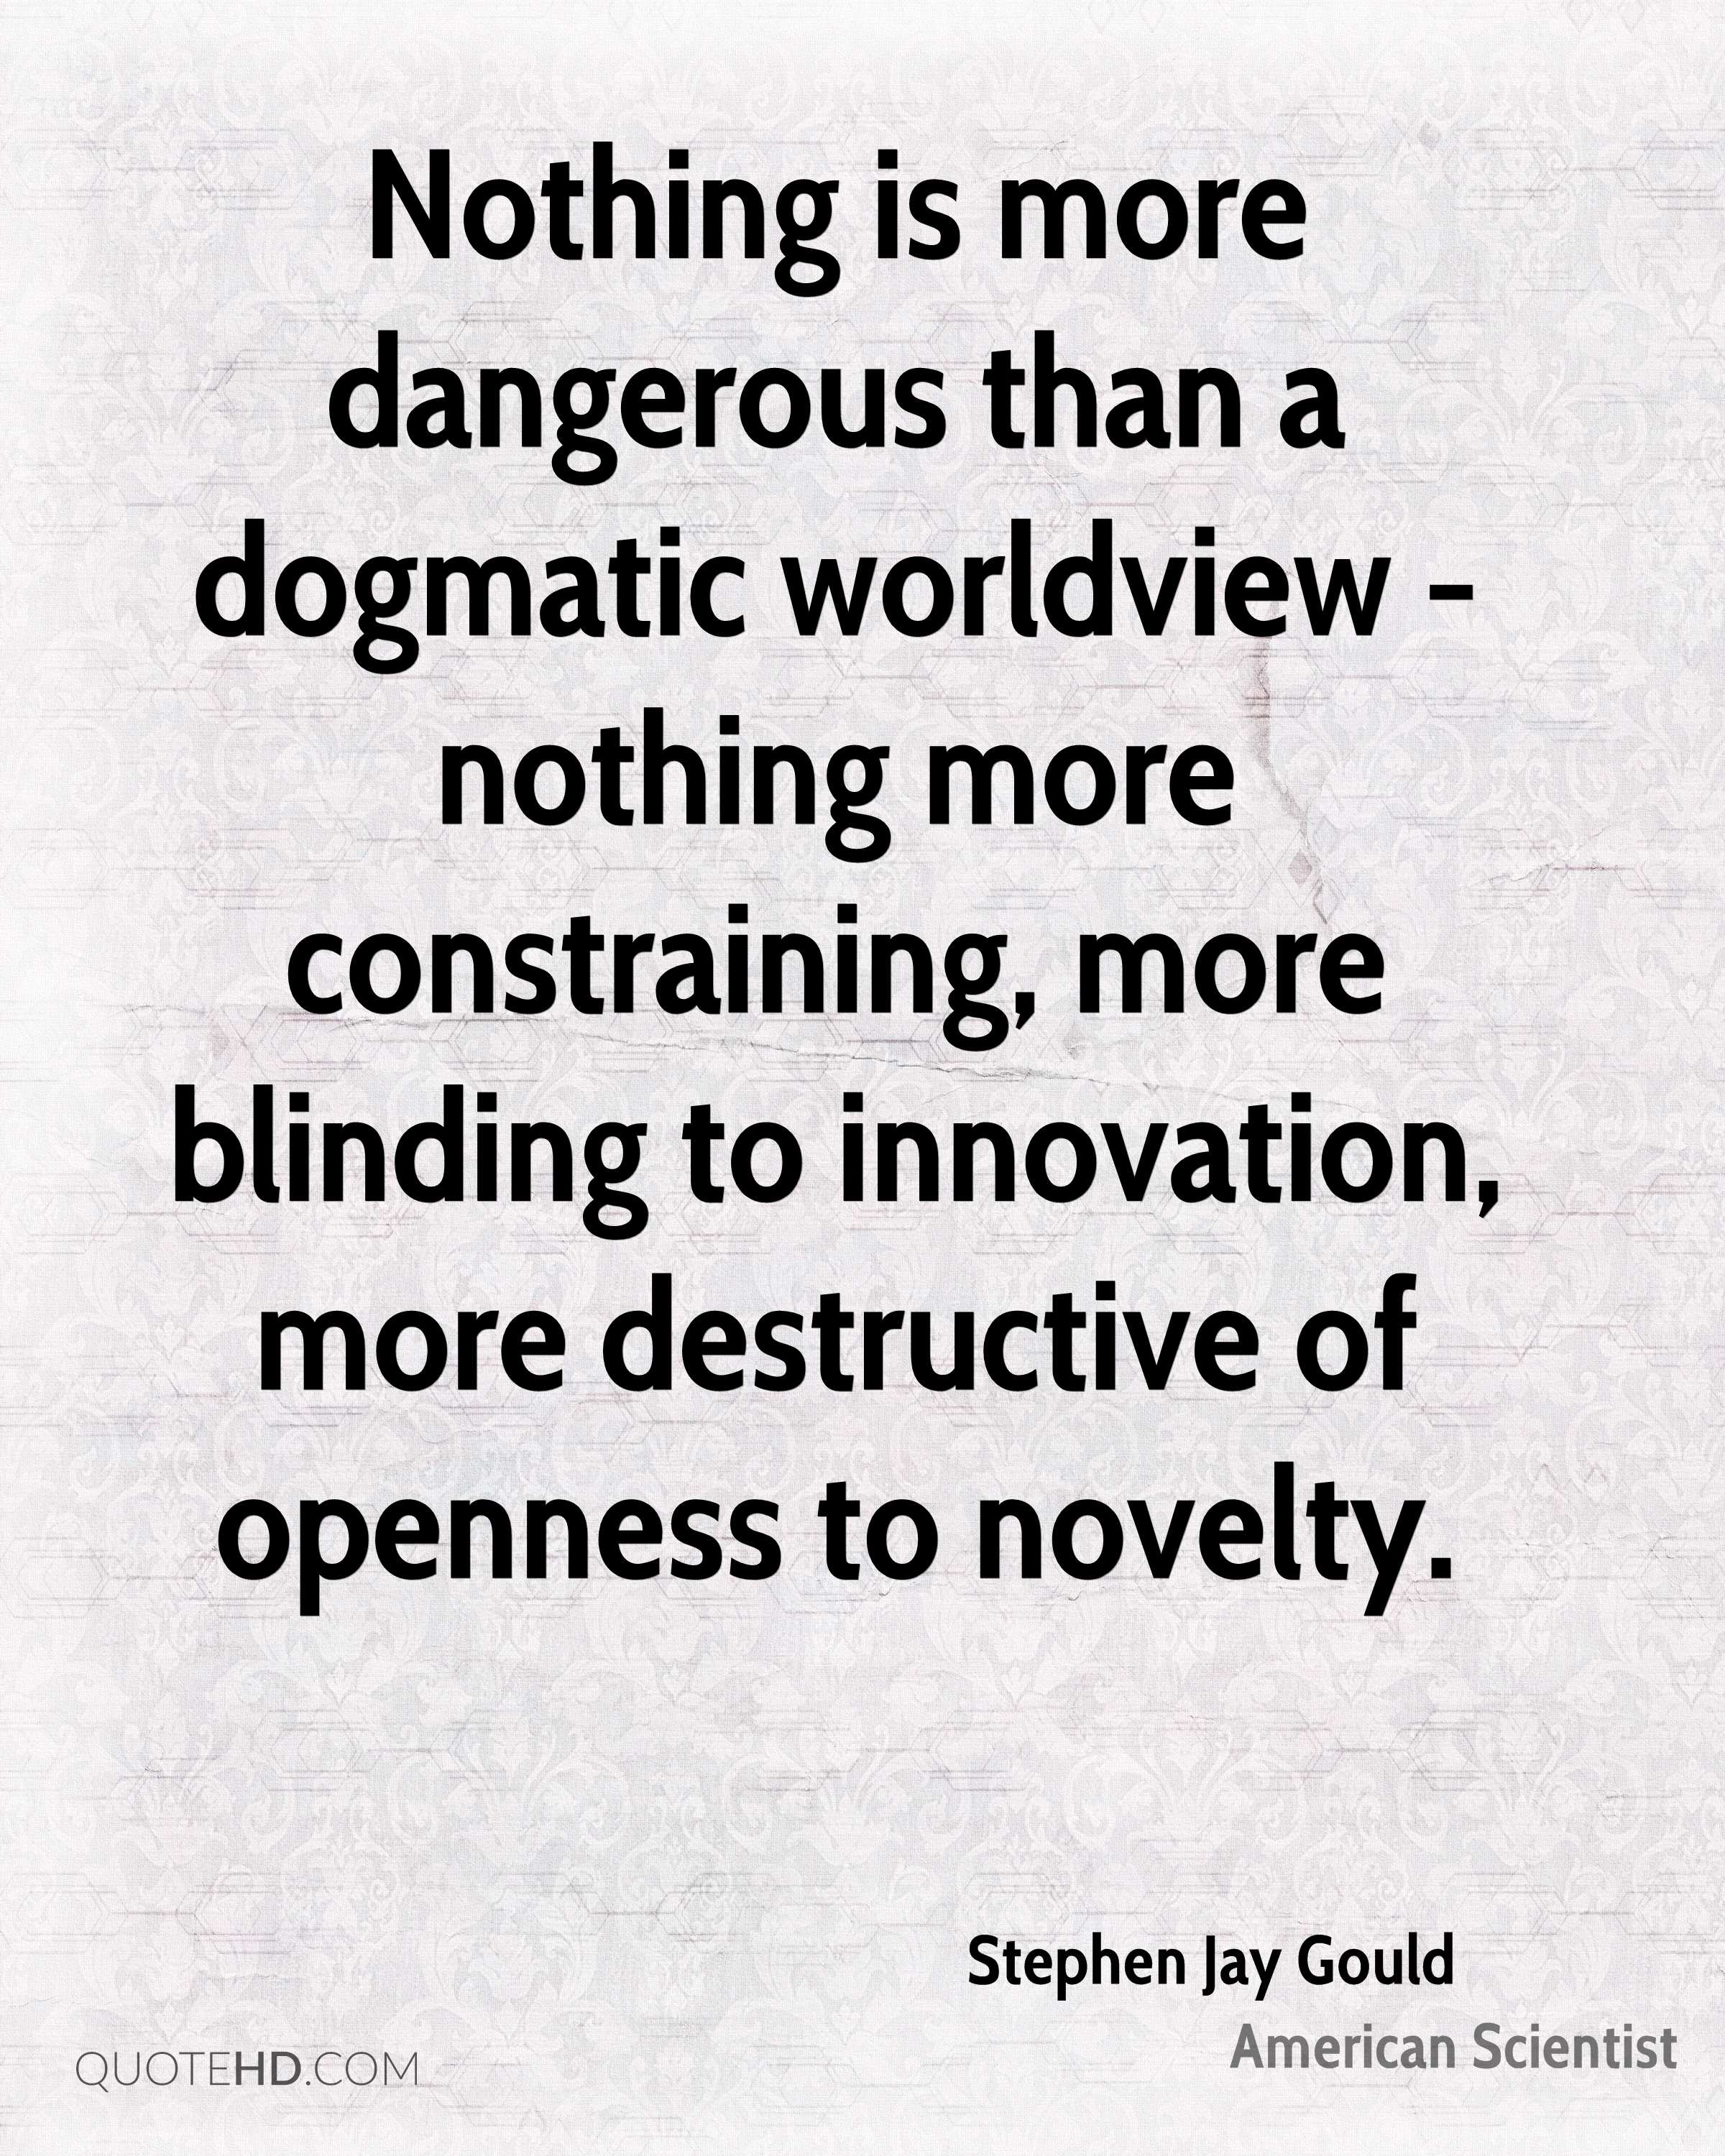 Nothing is more dangerous than a dogmatic worldview - nothing more constraining, more blinding to innovation, more destructive of openness to novelty.